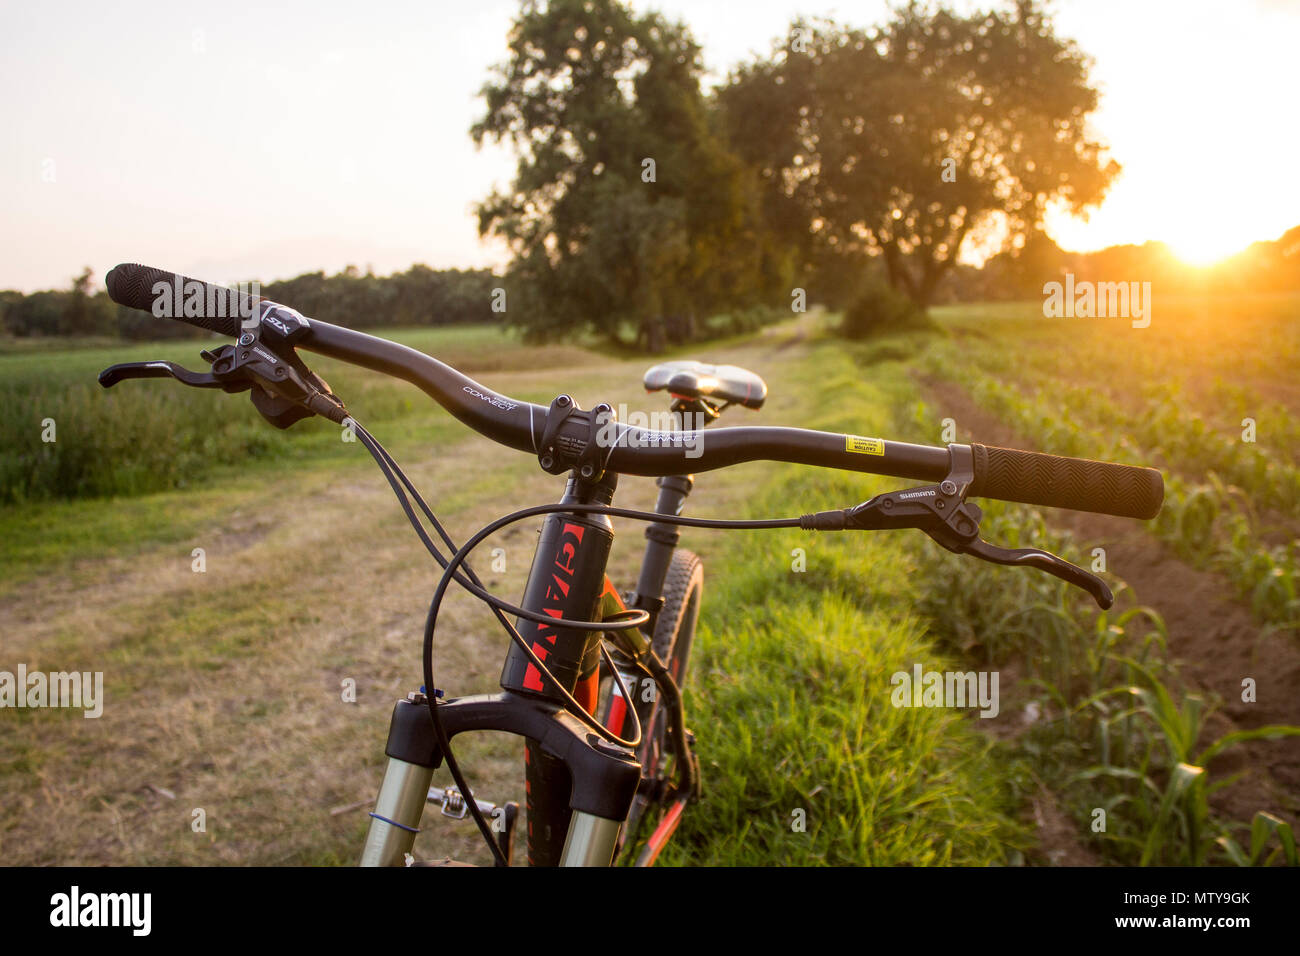 Tlaxcala, Mexico - May 27.2018. Giant is a Taiwanese and shimano a japanese companies, widely considered as the largest companies in the cycling indus - Stock Image